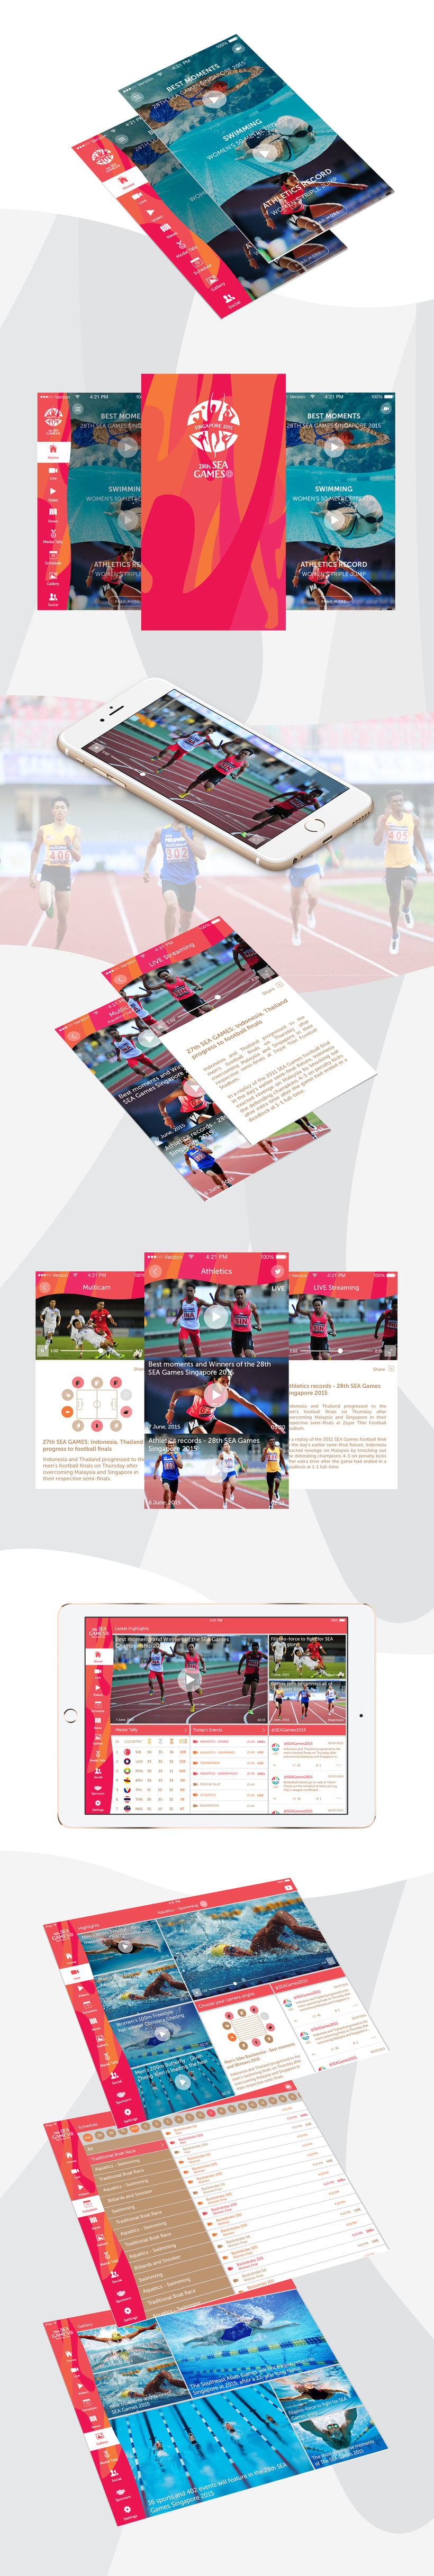 28th Southeast Asian Games 1